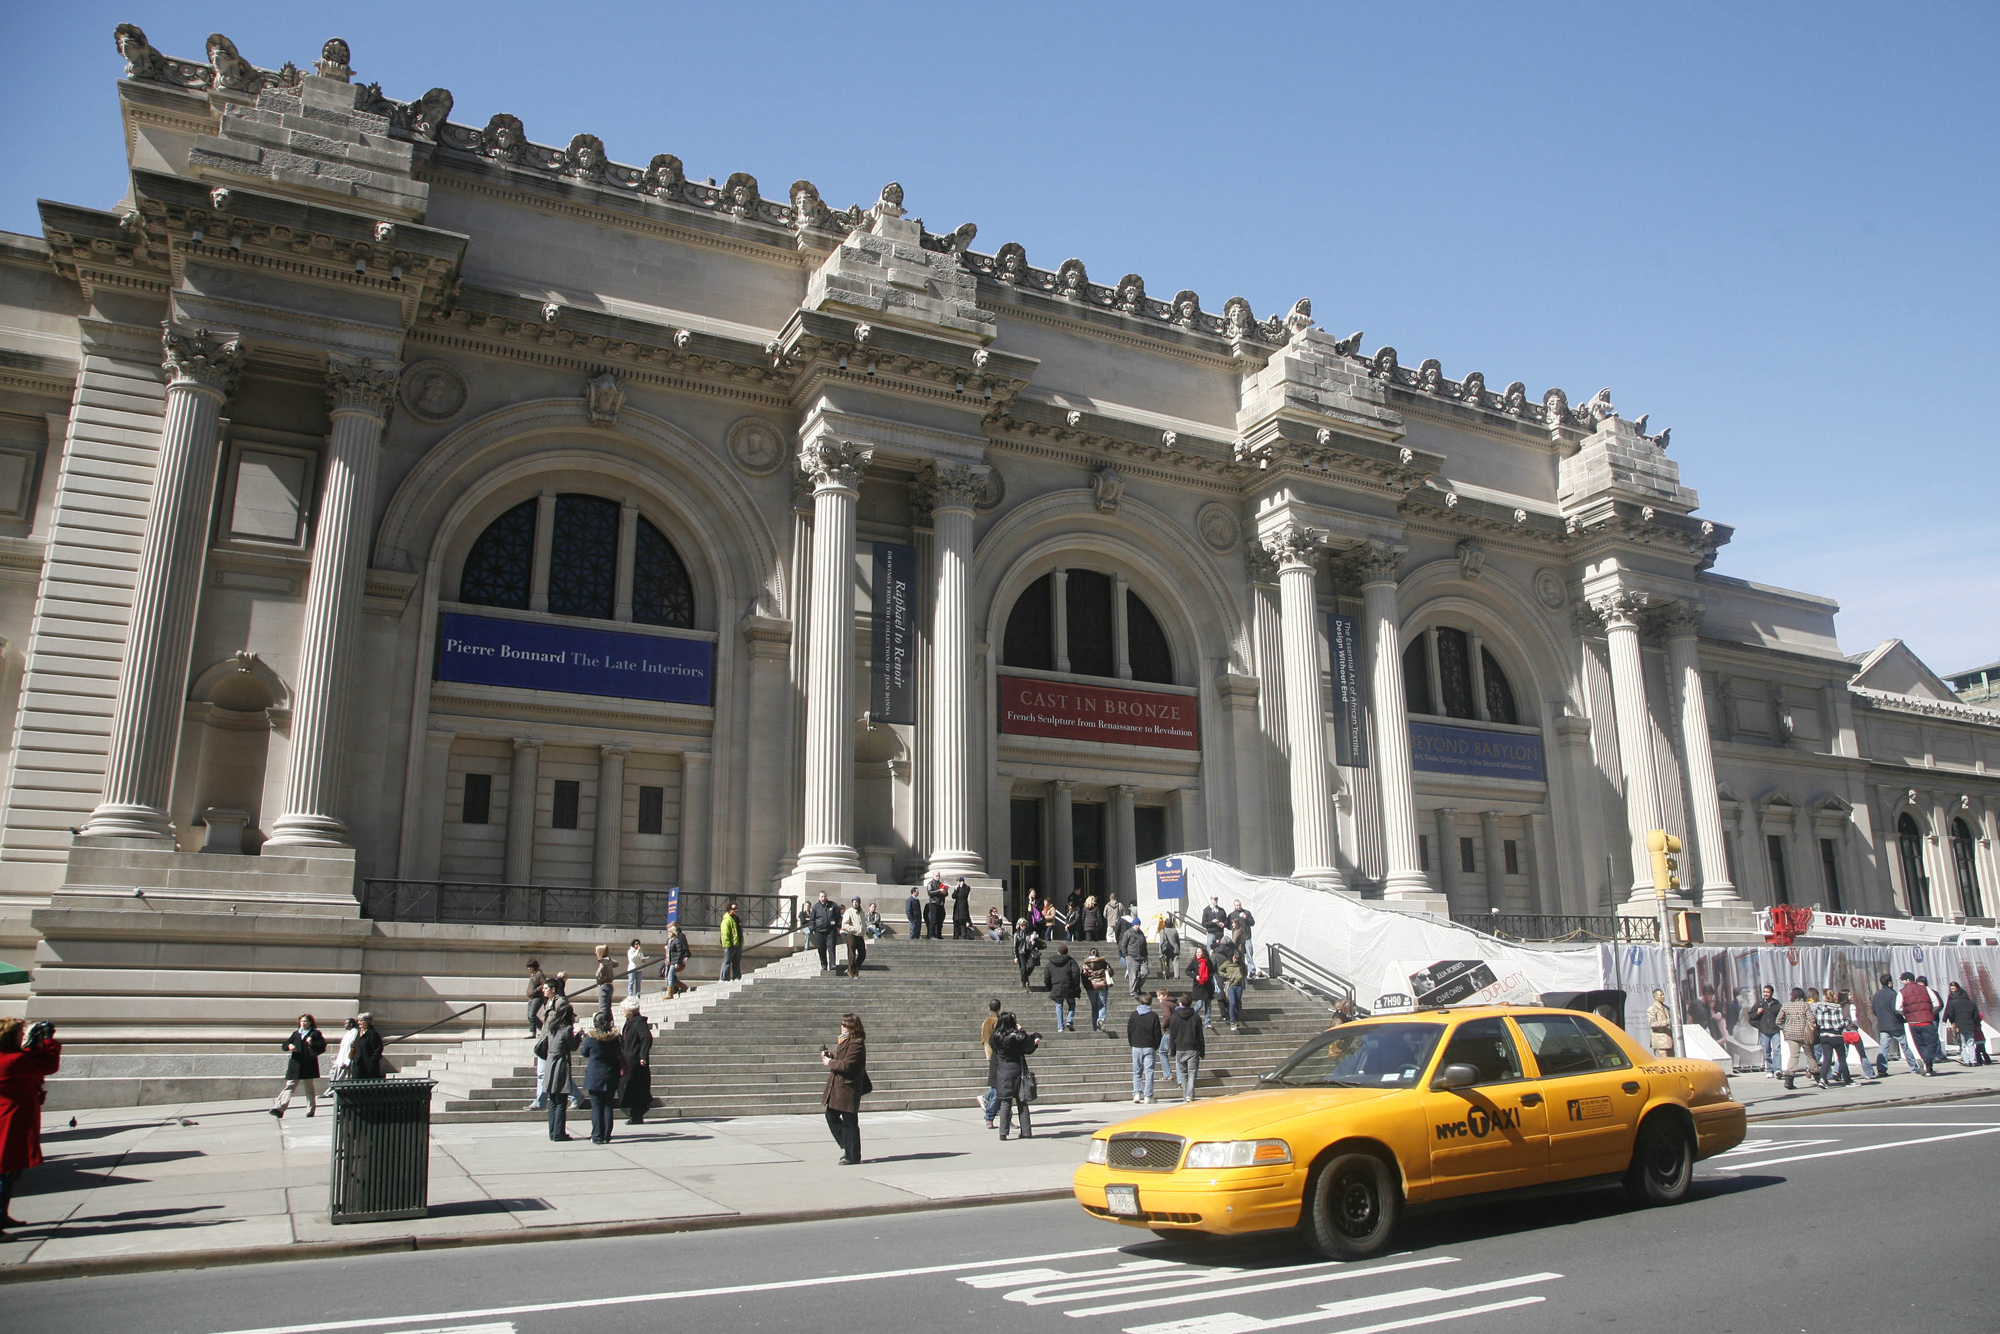 exterior real estate The Metropolitan Museum of Art on Fifth Avenue Friday, March 13, 2009 in New York. The museum suggests a $20 donation, however, visitors may contribute any dollar amount. (N.Y.Post: Chad Rachman)